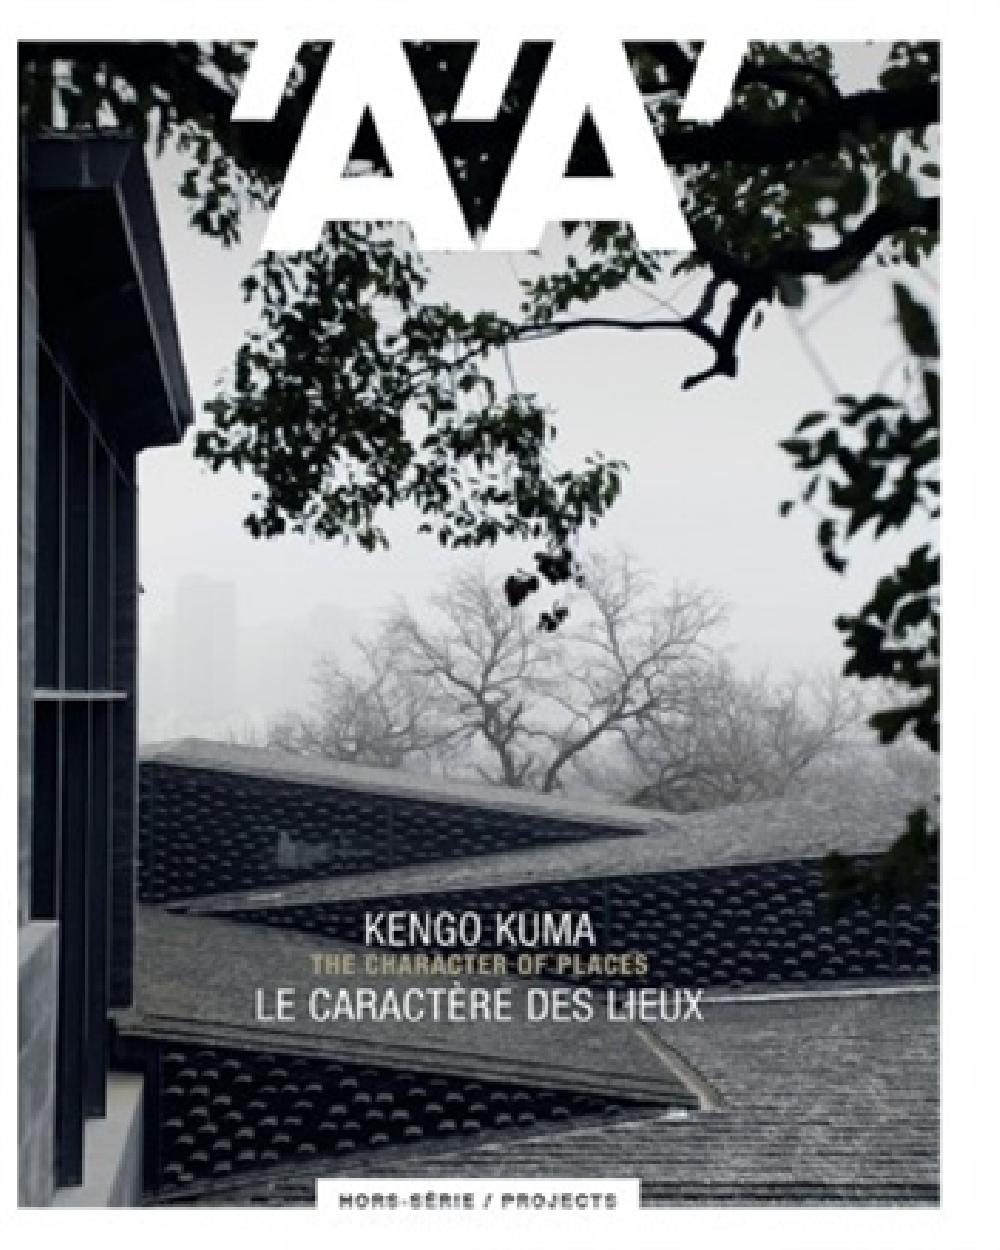 L´Architecture d´Aujourd´hui HS / Projects Kengo Kuma - mai 2018